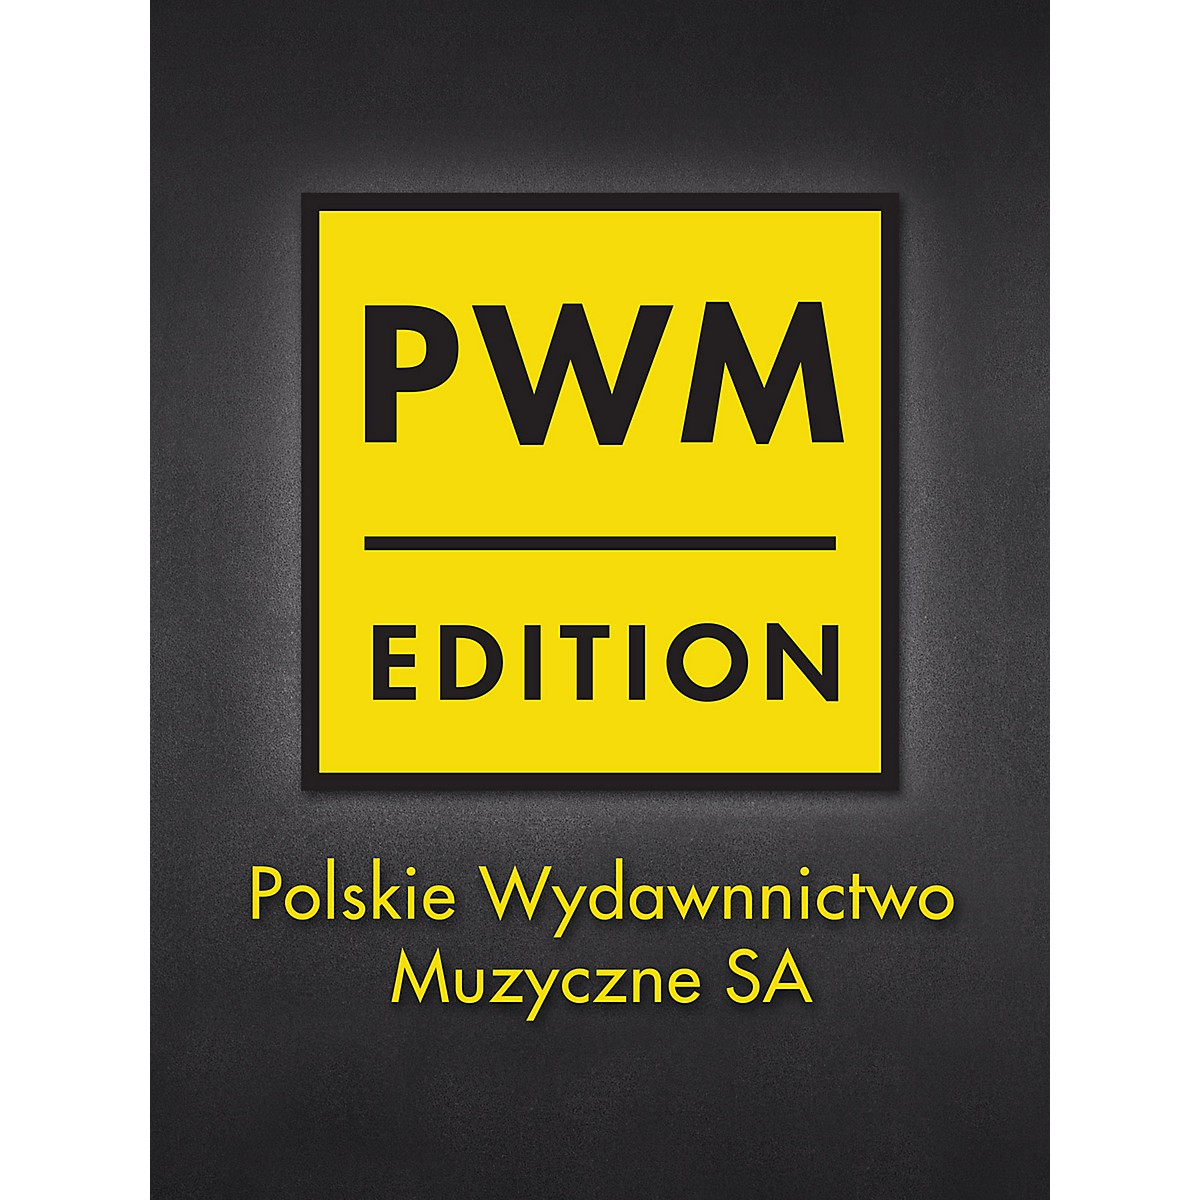 PWM Violin Concerto No.2 In D Minor Op.22 - Piano Red. PWM Series Composed by H Wieniawski